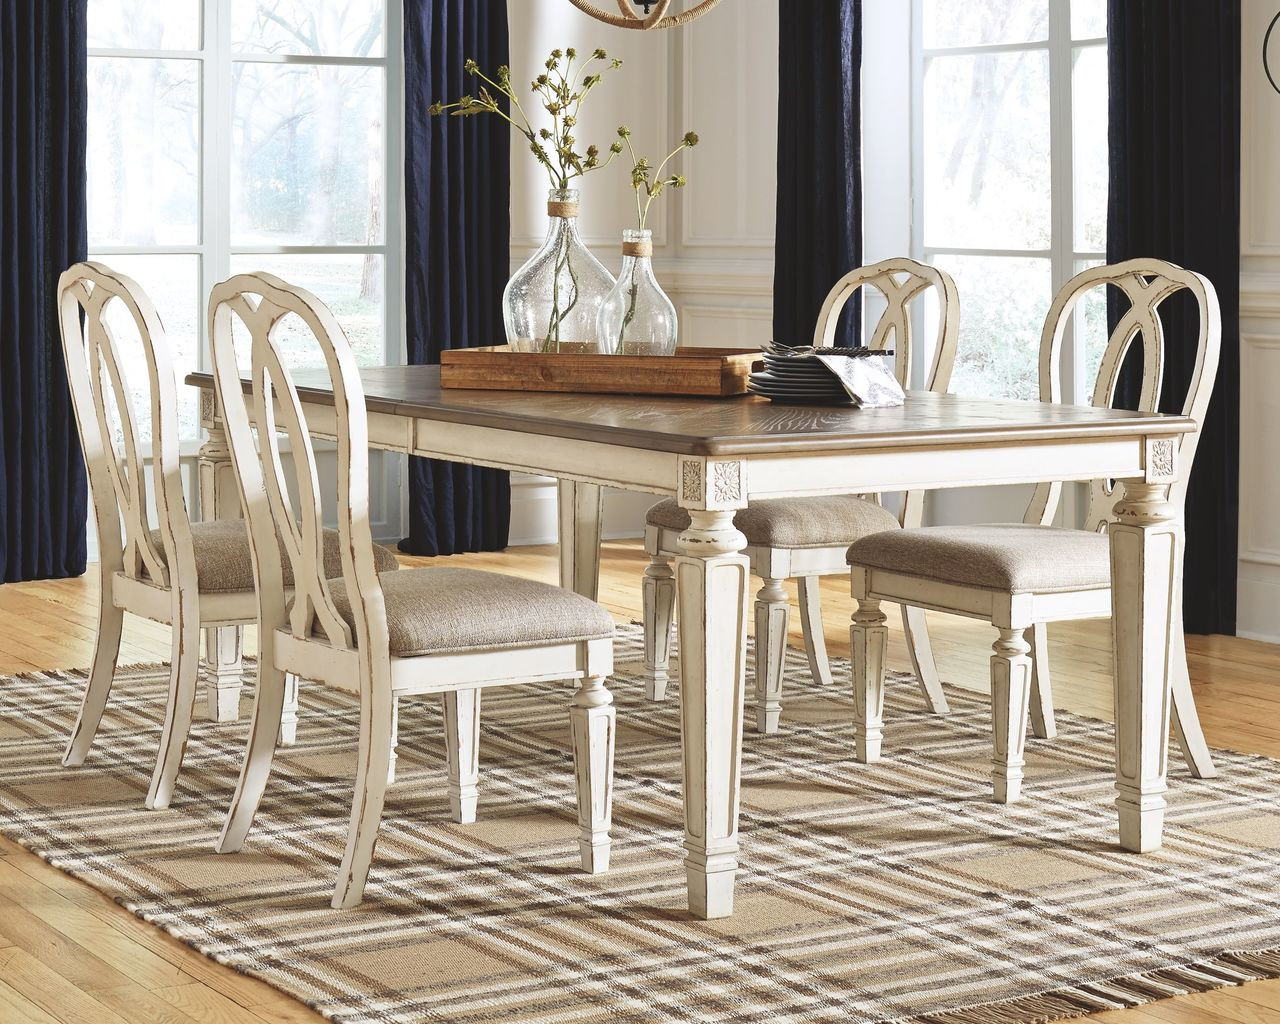 Stupendous Ashley Realyn Chipped White 5 Pc Rectangular Ext Table 4 Upholstered Side Chairs Machost Co Dining Chair Design Ideas Machostcouk